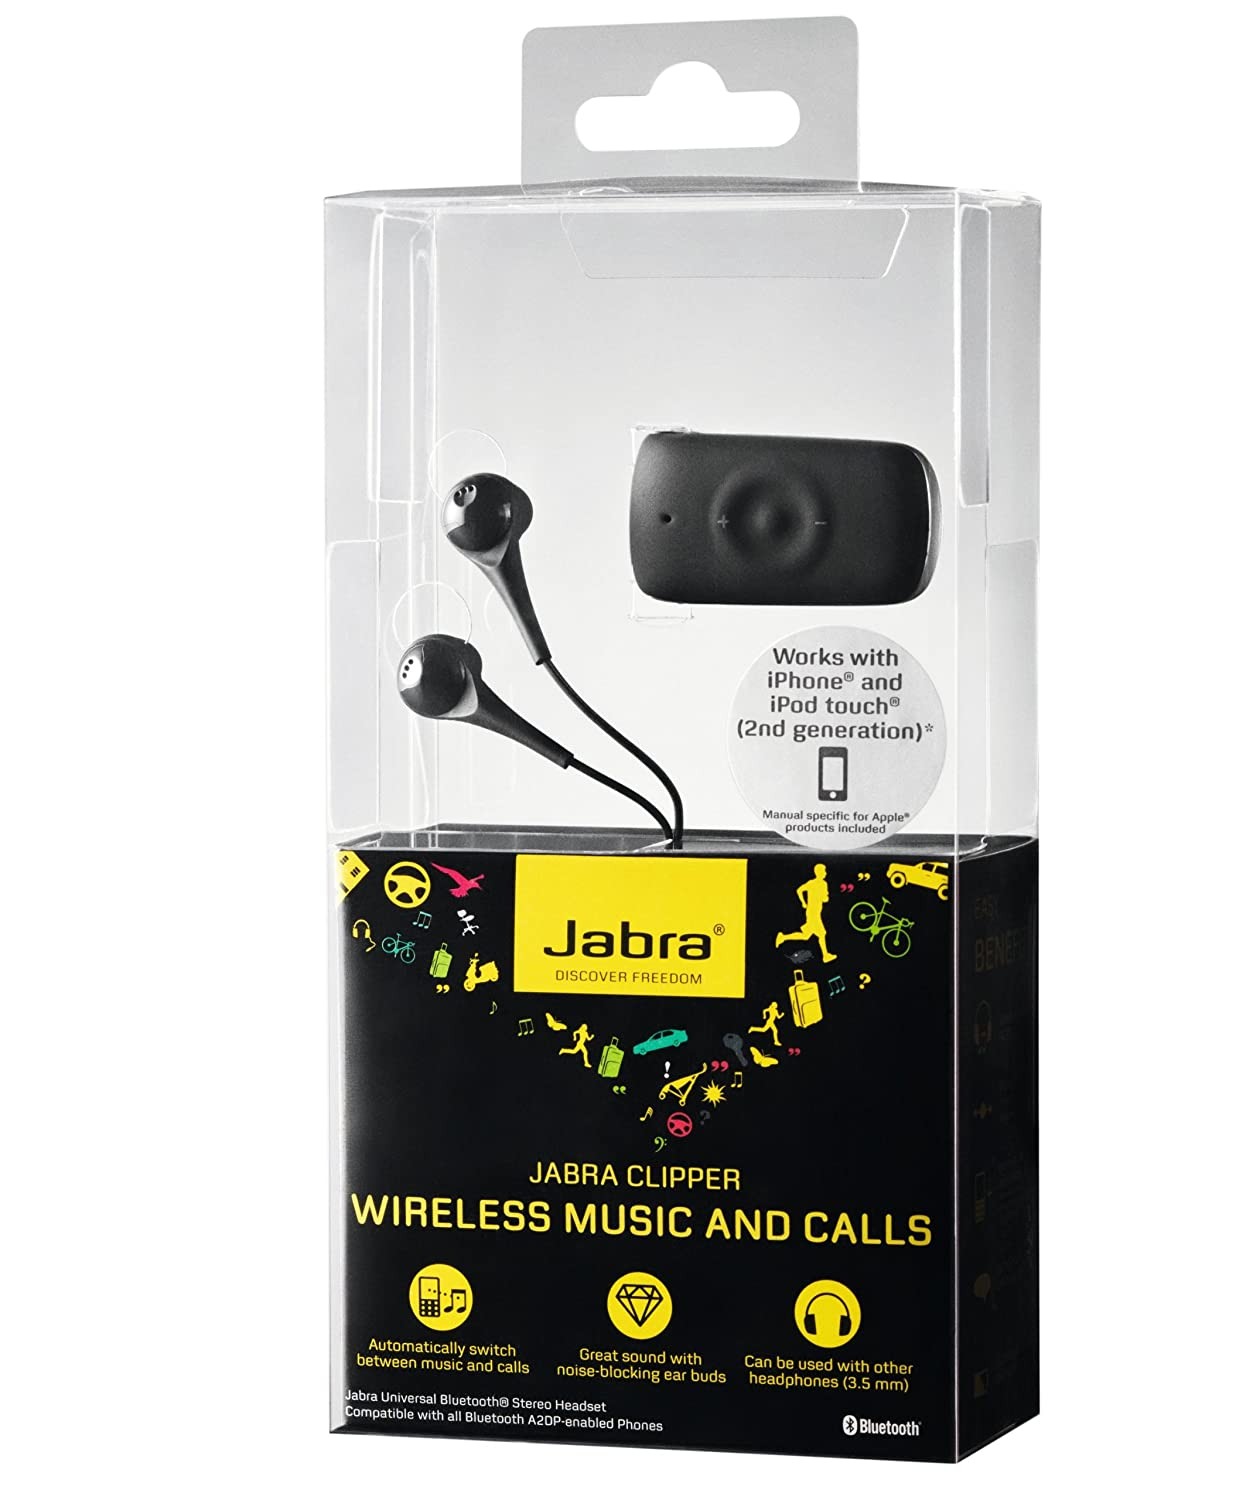 363cc4c4419 Amazon.com: Jabra CLIPPER Bluetooth Stereo Headset (Discontinued by  Manufacturer): Cell Phones & Accessories